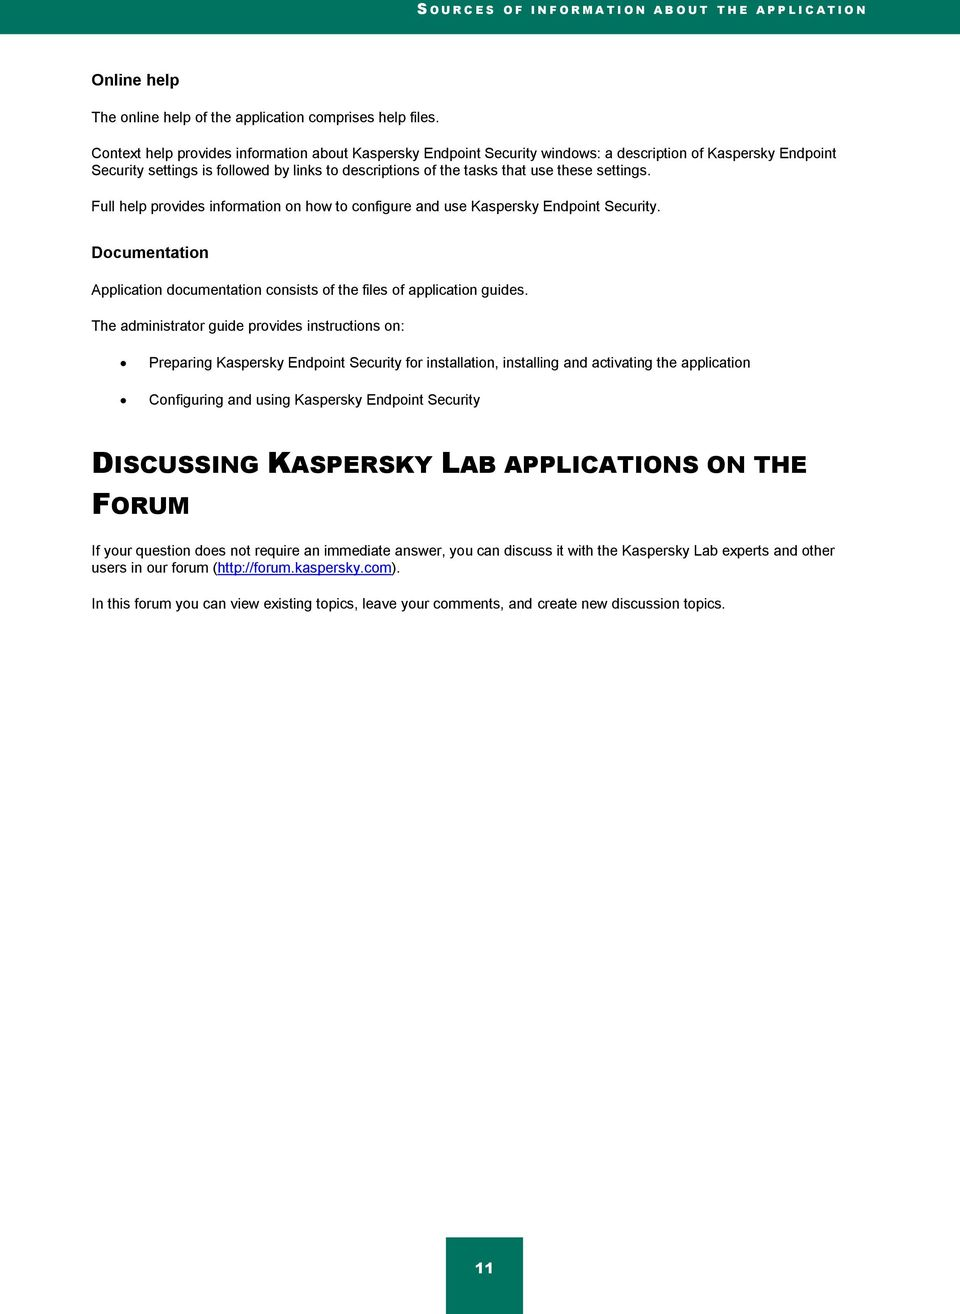 Kaspersky Security for Mobile Administrator's Guide - PDF